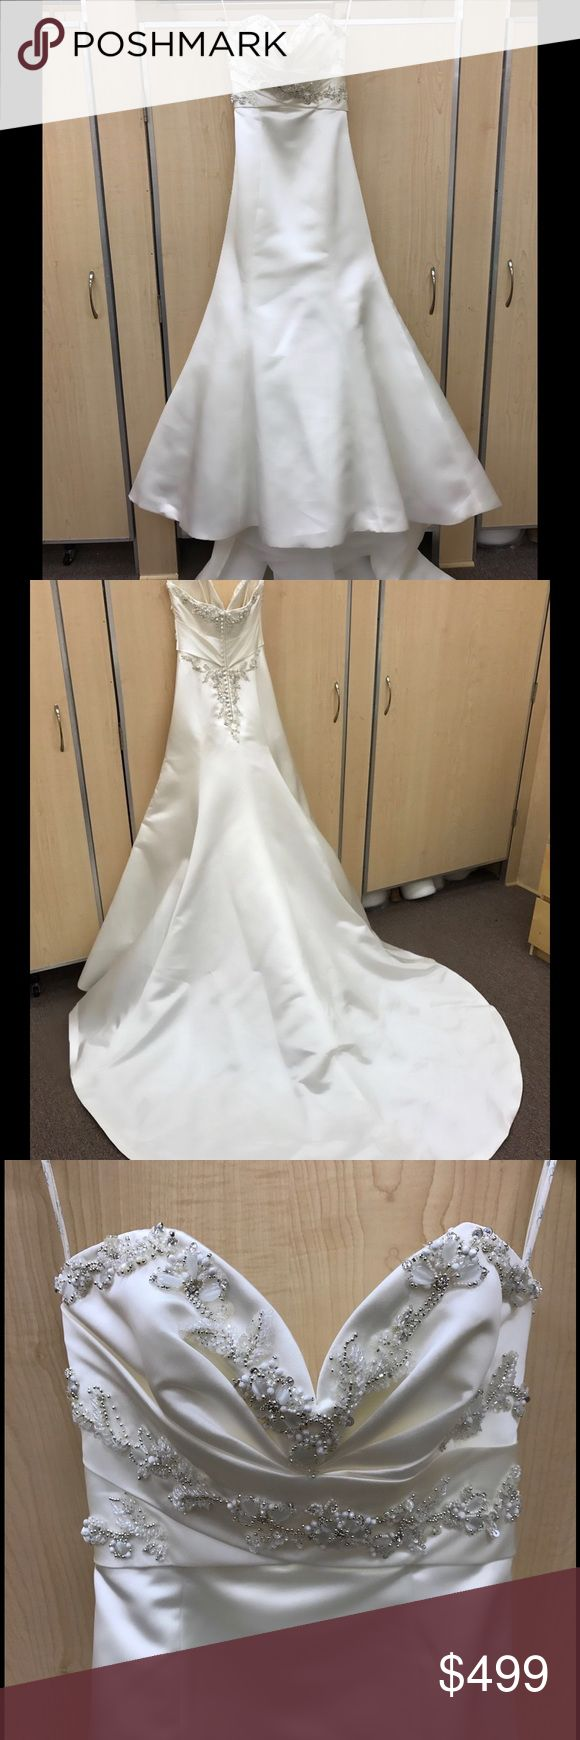 🎉💃🏿COMING SOON 🆕 ENZOANI WEDDING GOWN NWT❣️💍 BRAND NEW ENZOANI CANTERBURY BLUE WEDDING GOWN IN IVORY WITH SWEETHEART NECKLINE AND SATIN FABRIC , FIT AND FLARE DESIGN WITH GORGEOUS BEADING , FRONT AND BACK !! RETAILS FOR $1,500 NWT ENZOANI CANTERBURY Dresses Wedding